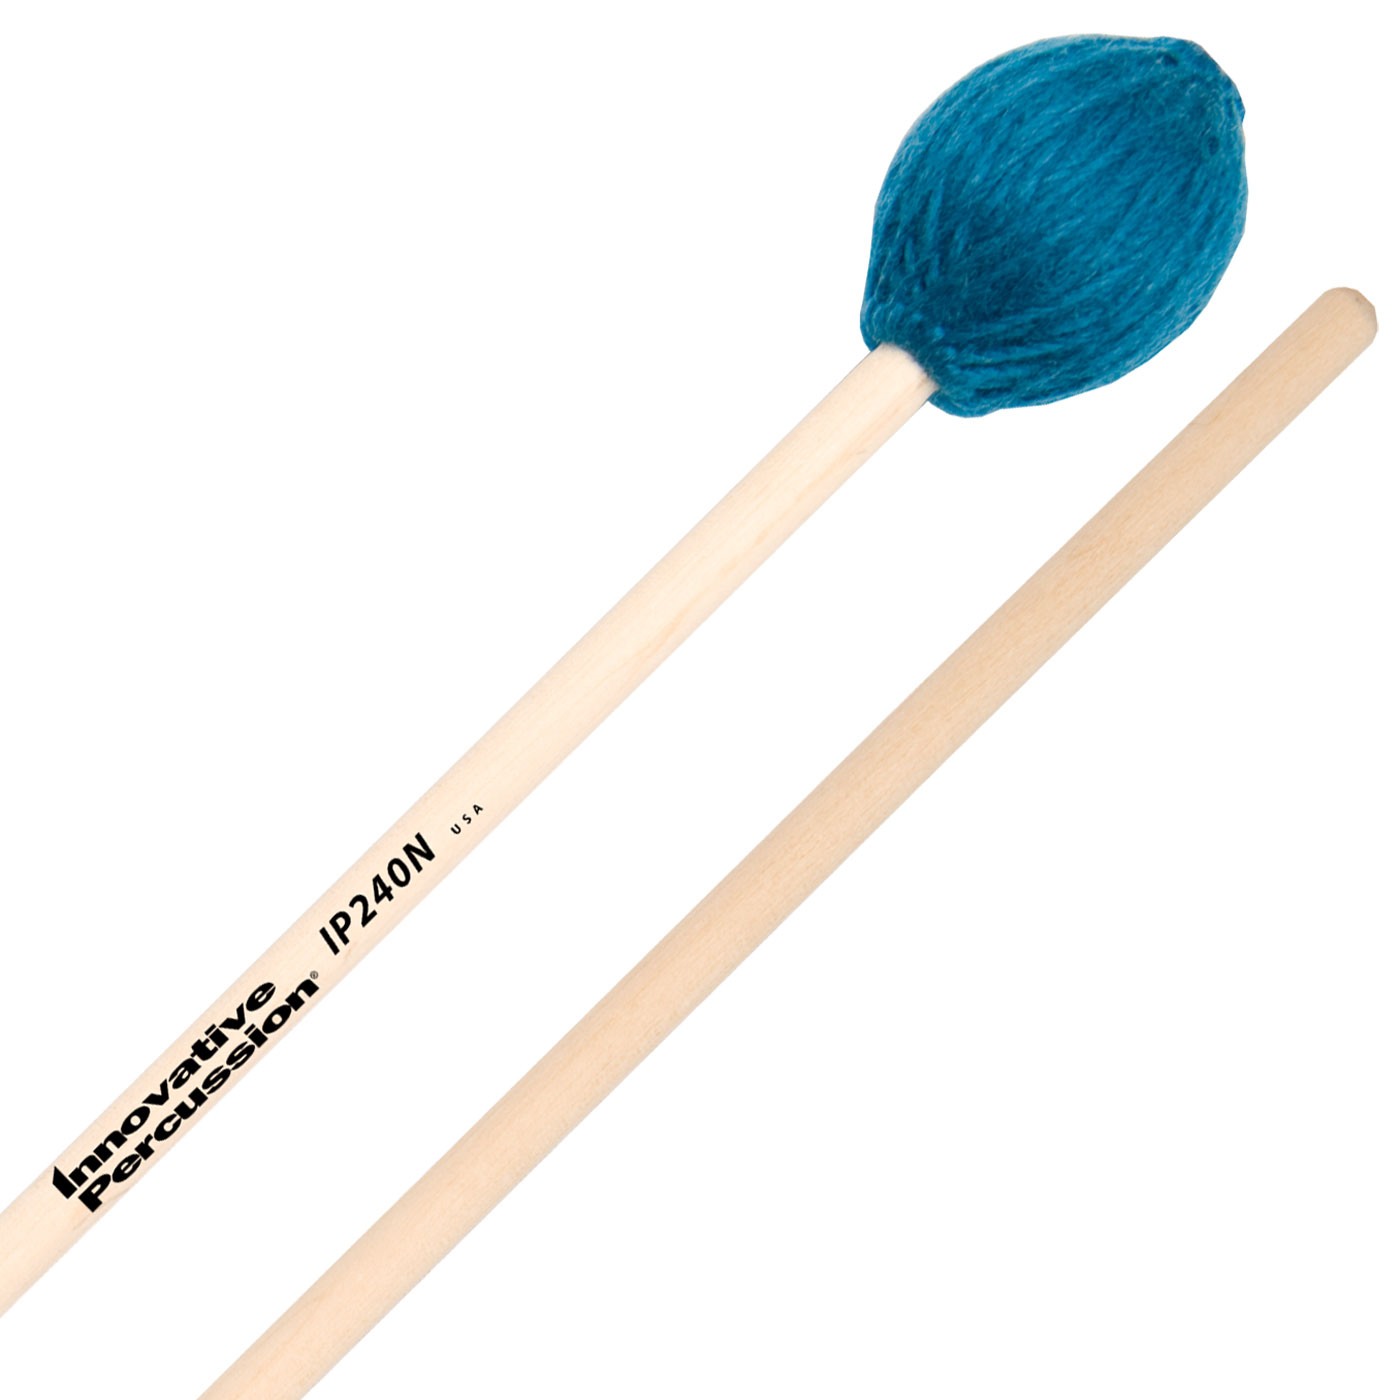 Innovative Percussion IP240N Soloist Series Medium Marimba Mallets with Natural Birch Shafts